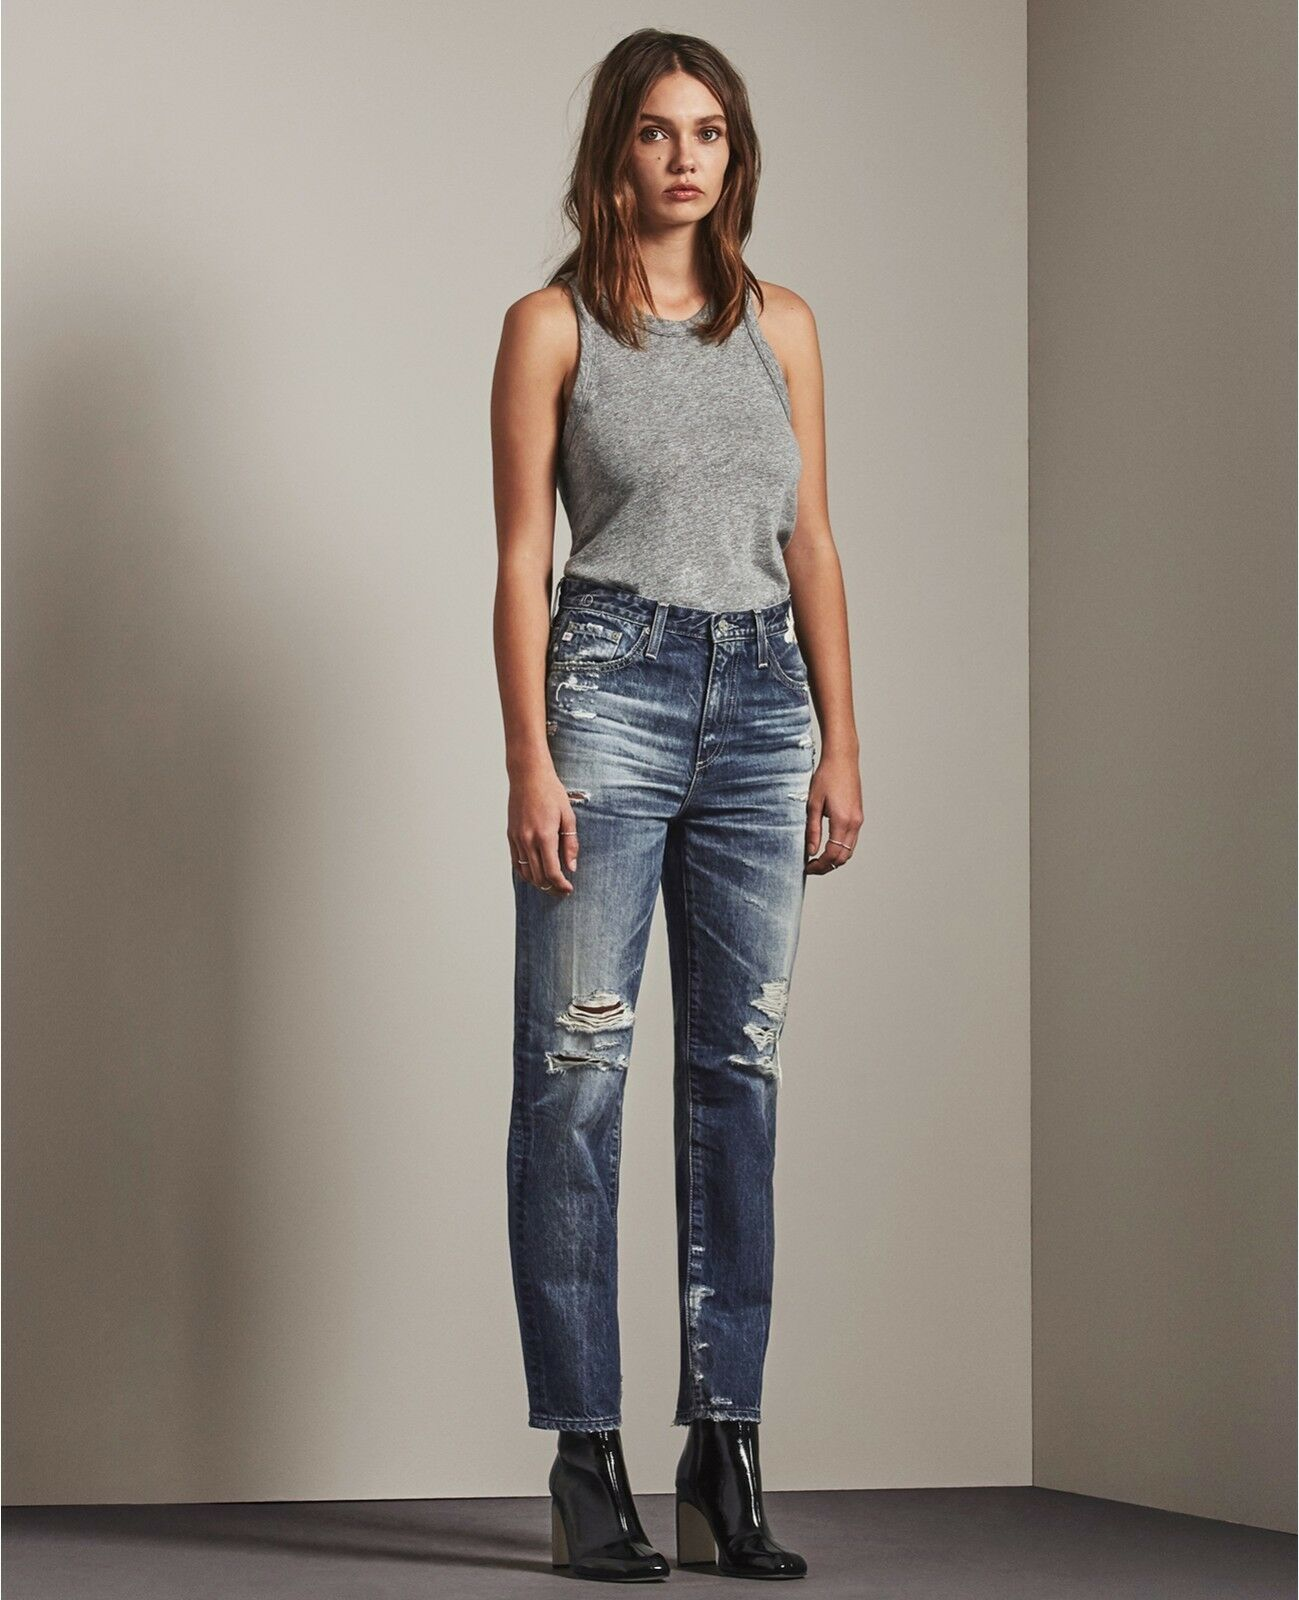 AG Adriano goldschmied Phoebe High Rise Straight Crop 23 Yr Woven Dream, Size 26